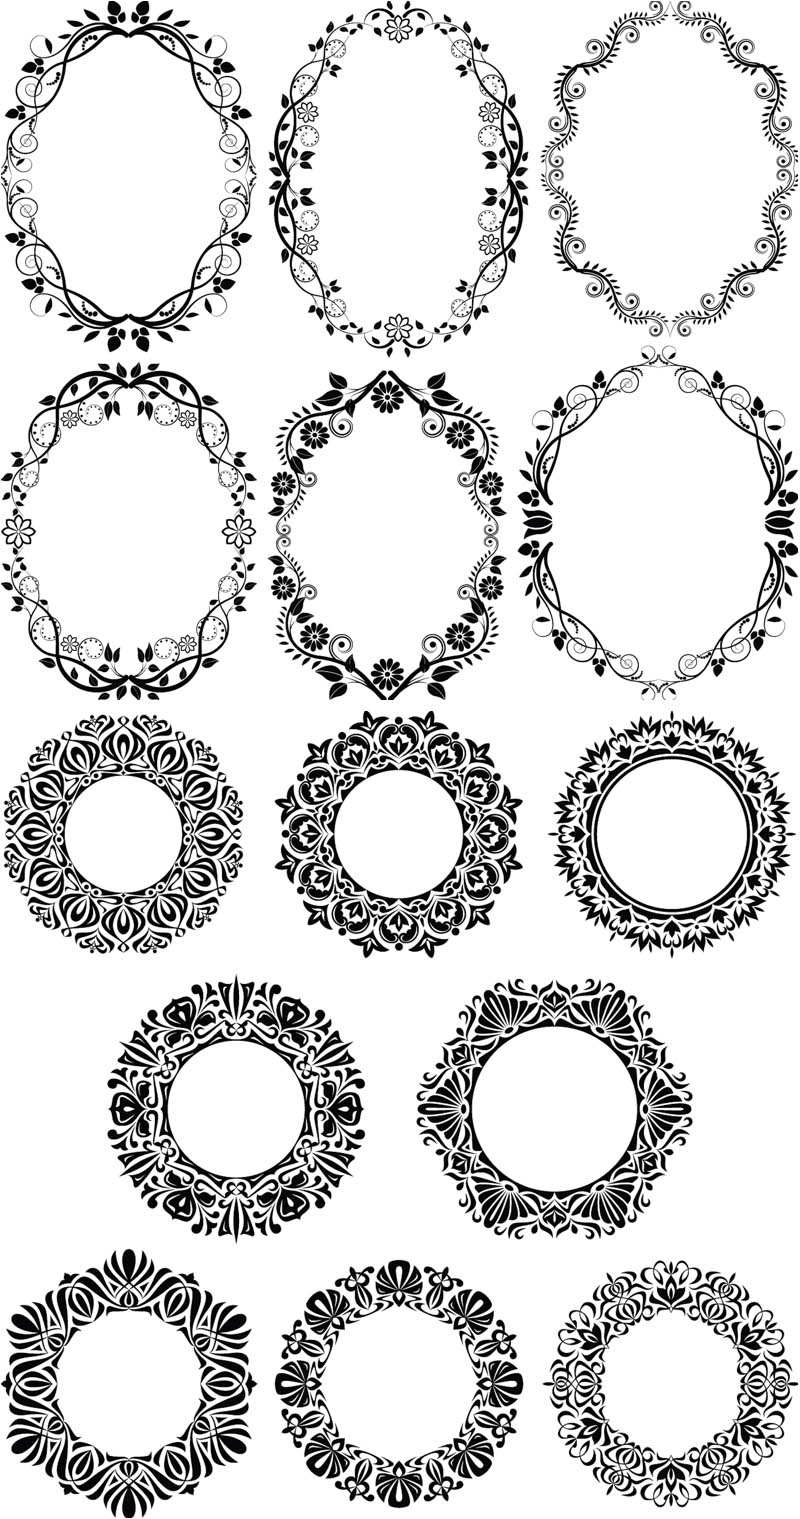 7 Round Decorative Frame Vector Images